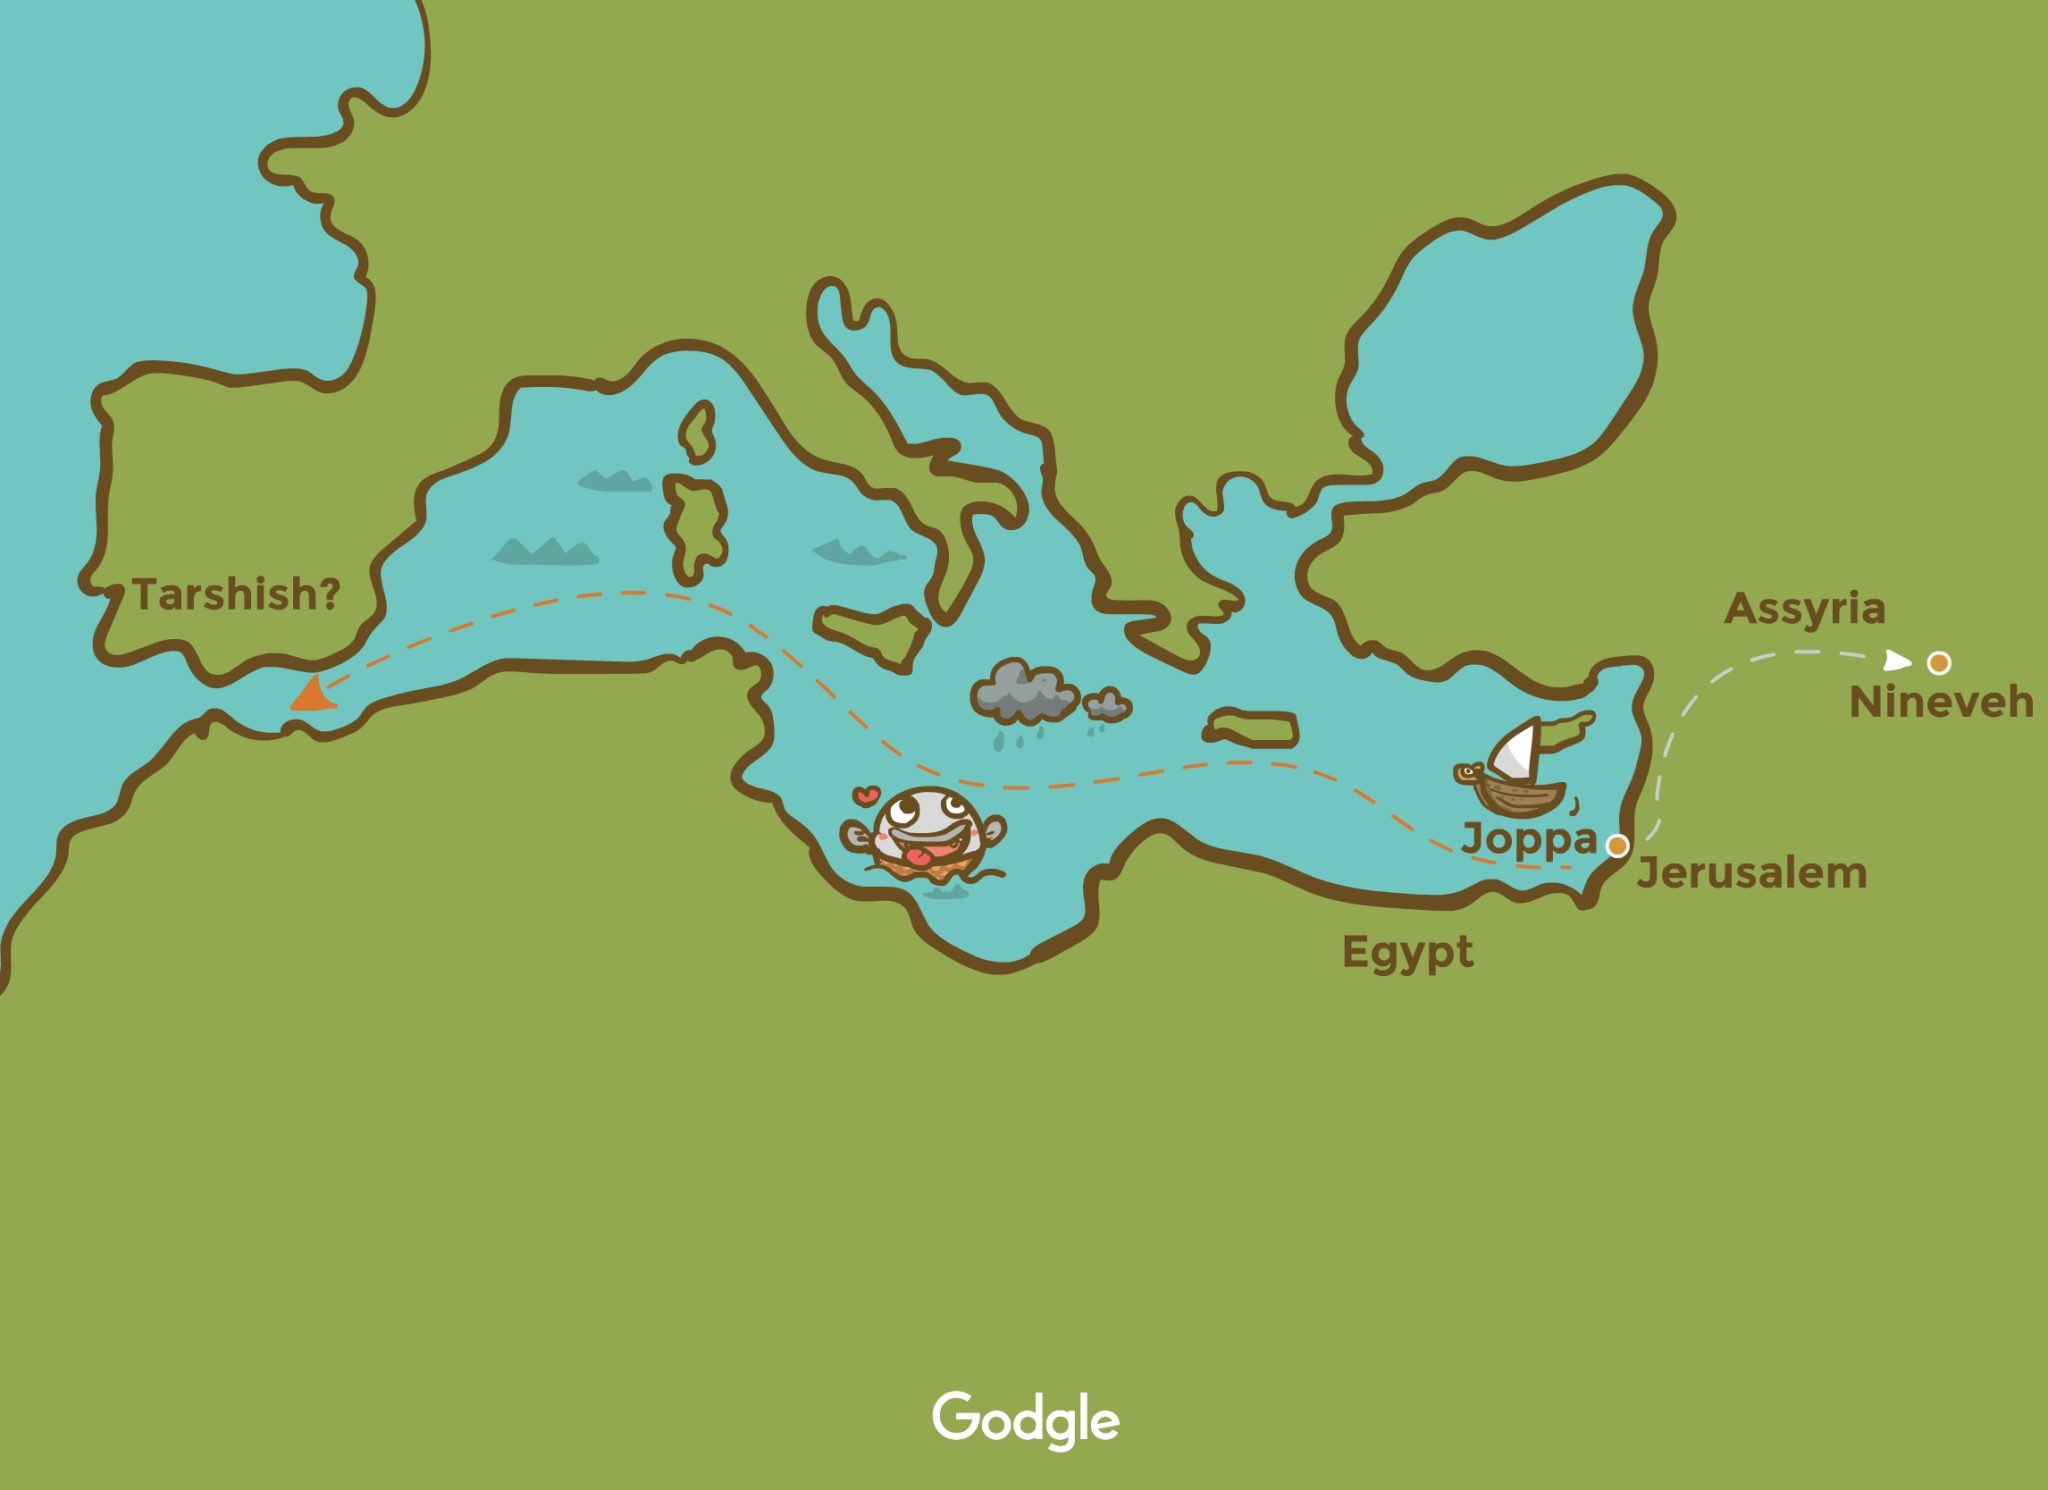 Map Jonah's running away from God instead of Nineveh, he went to tarsish instead